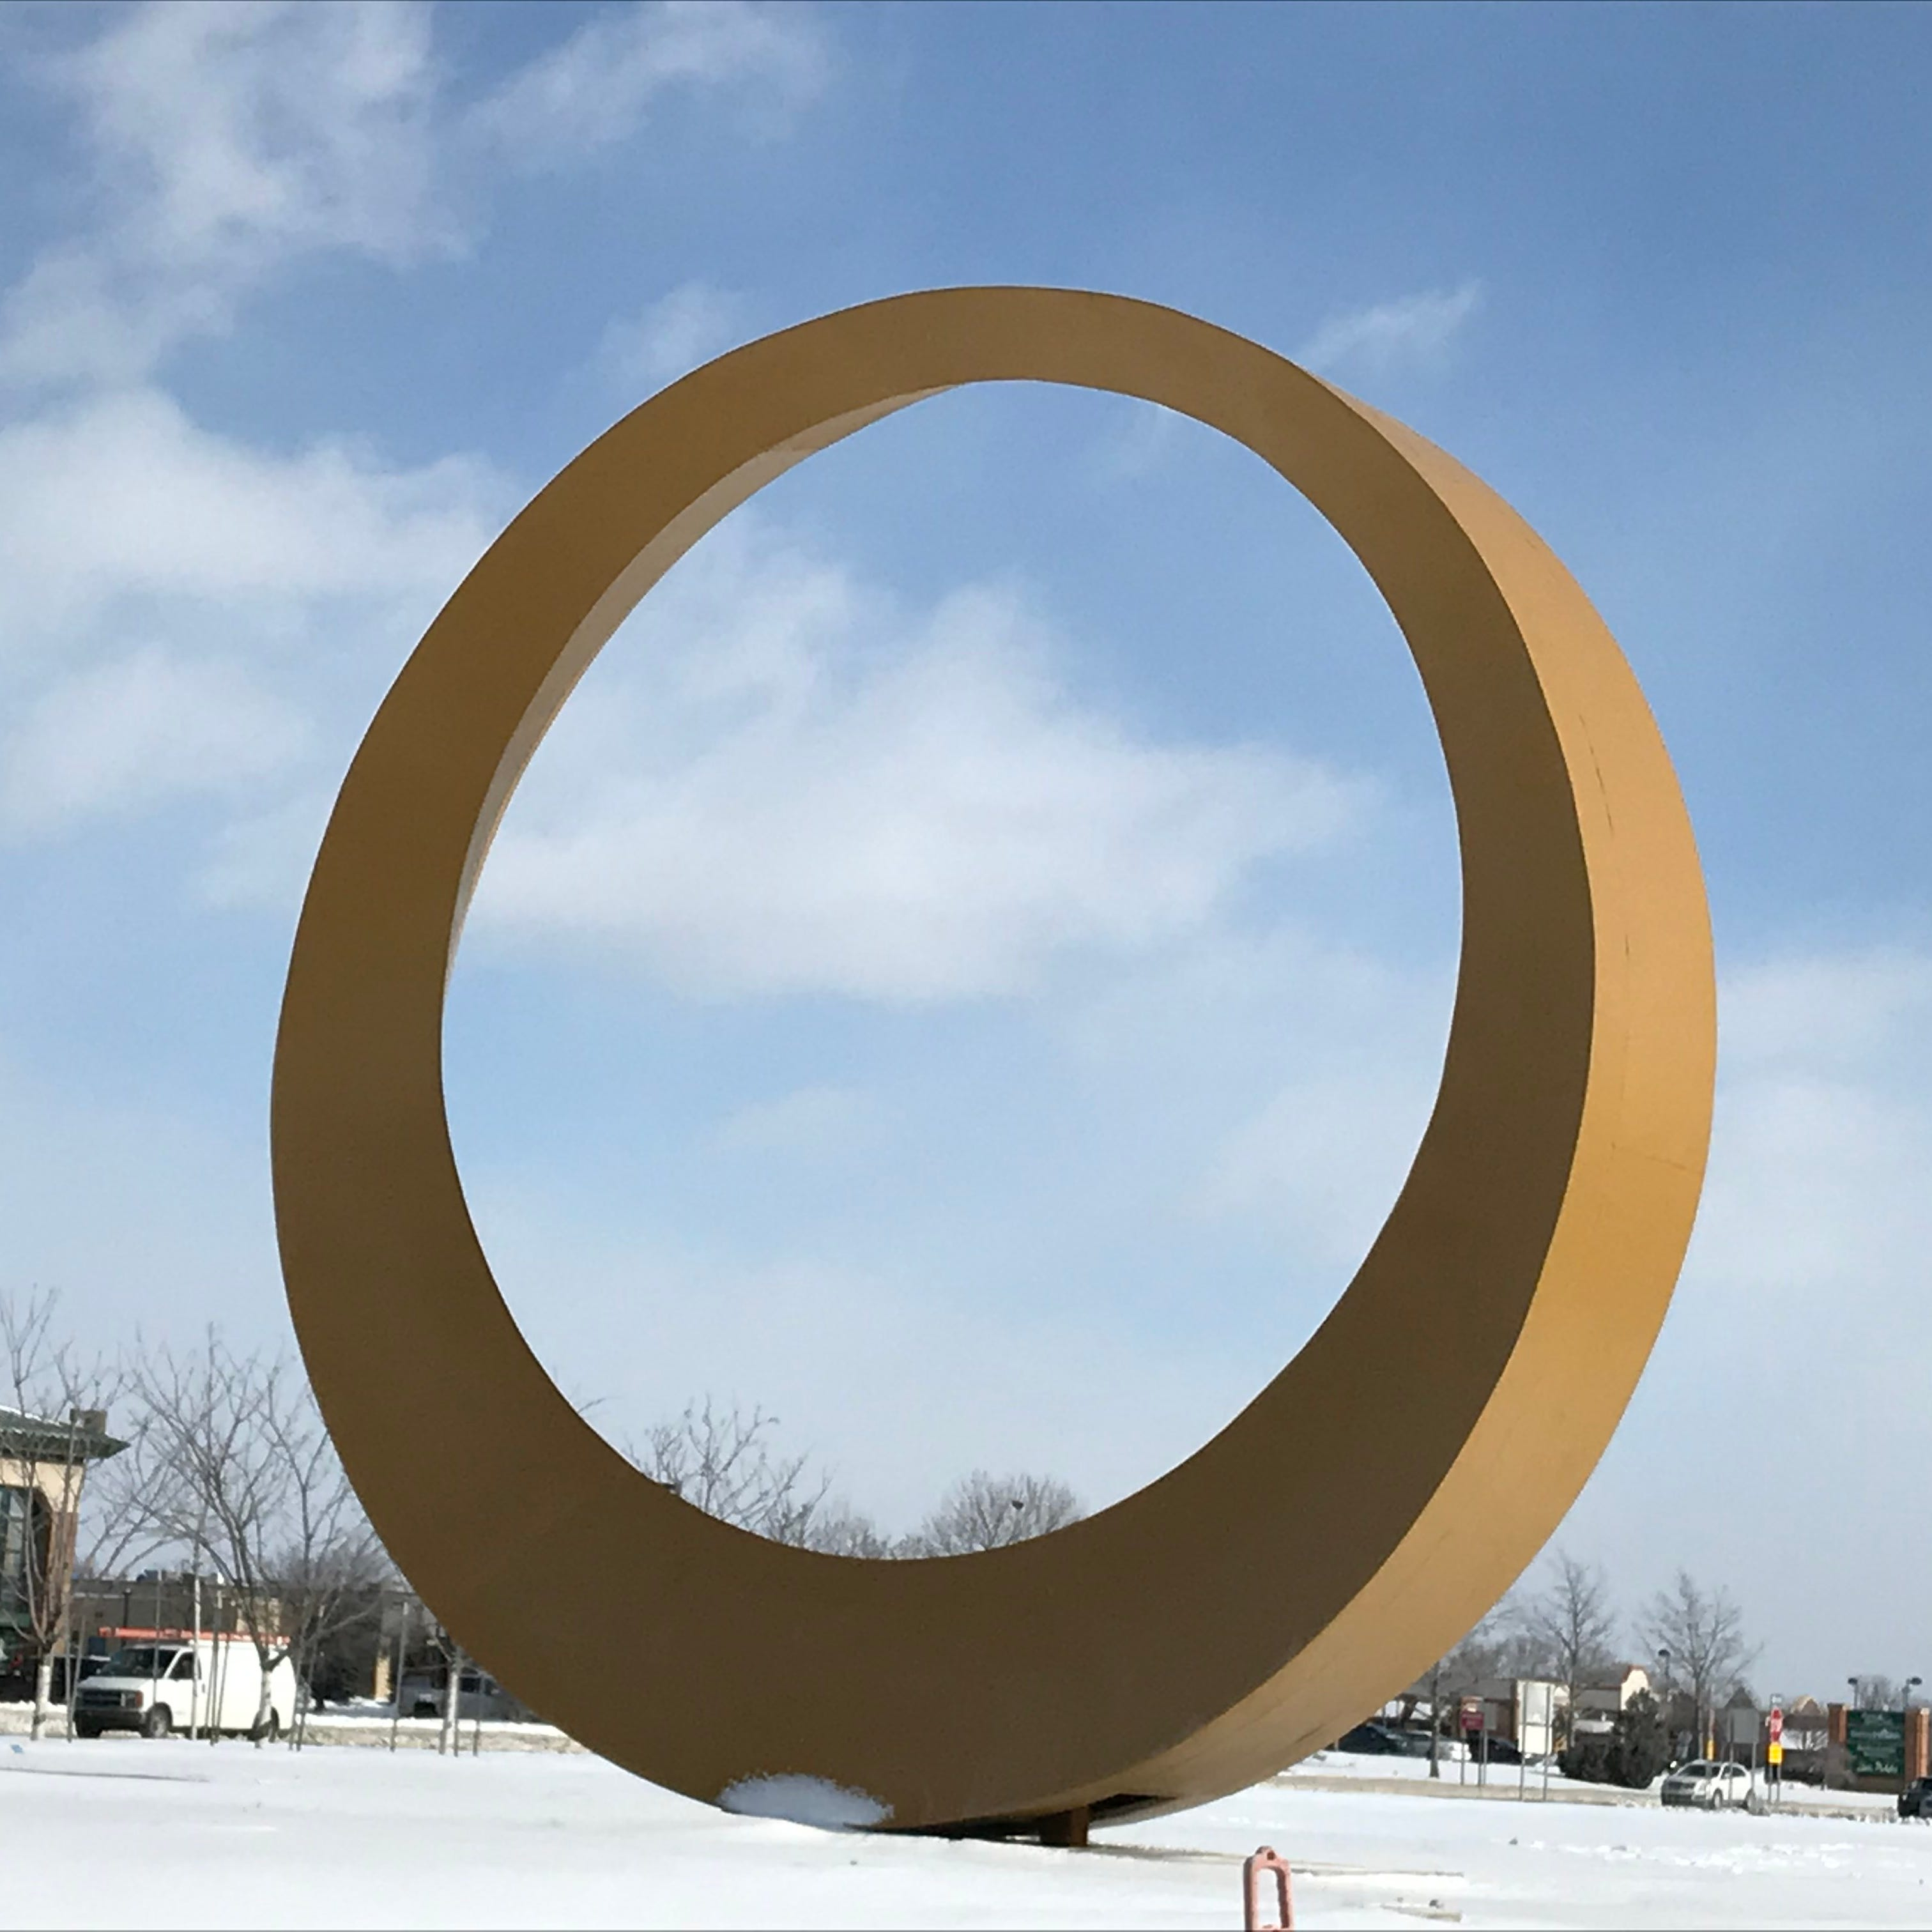 'The Halo' wins name for golden icon in Sterling Heights